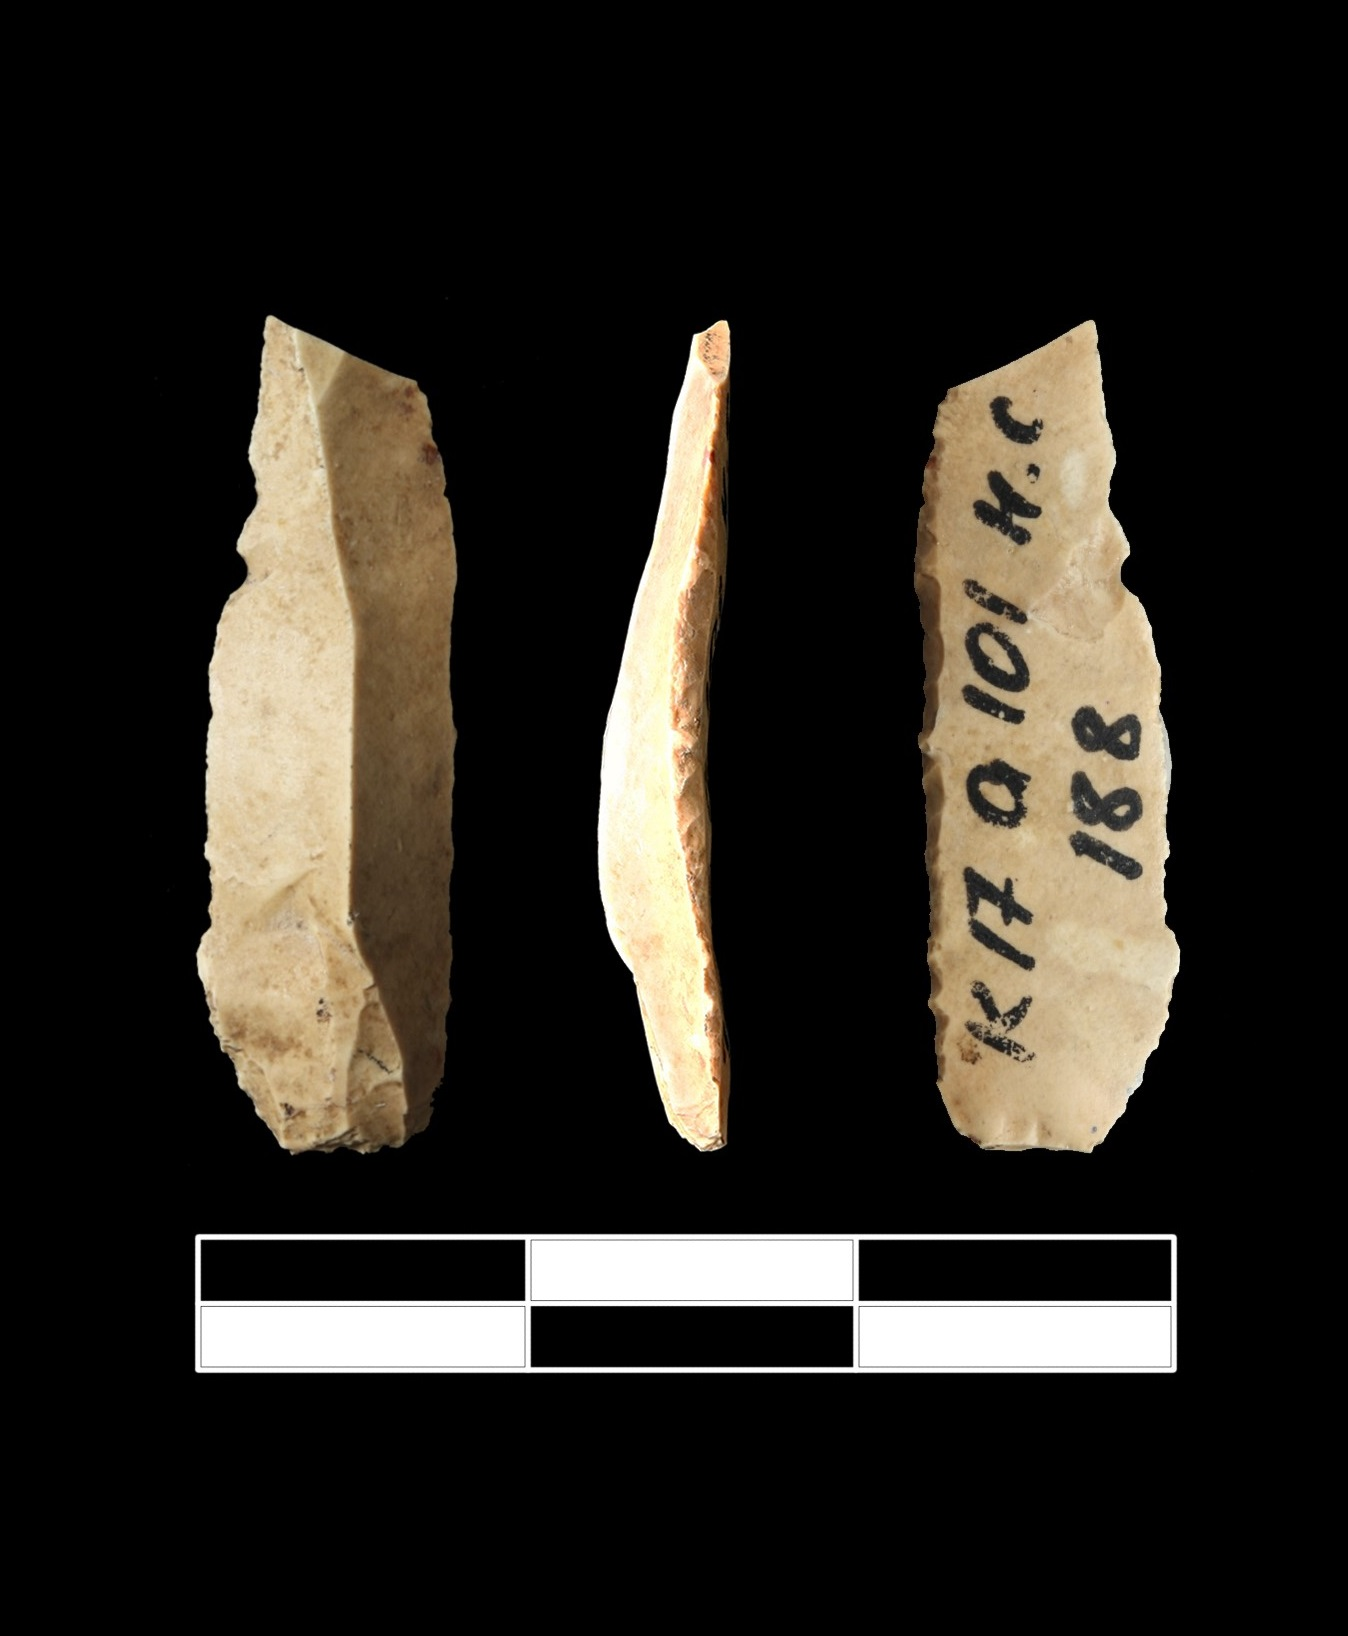 A 41,000-year-old bladelet tool from Kostënki 17. The critical comment claimed that this artefact may not to belong to the Spitsynian Layer II–in fact, there is no reason to question its Layer II attribution.